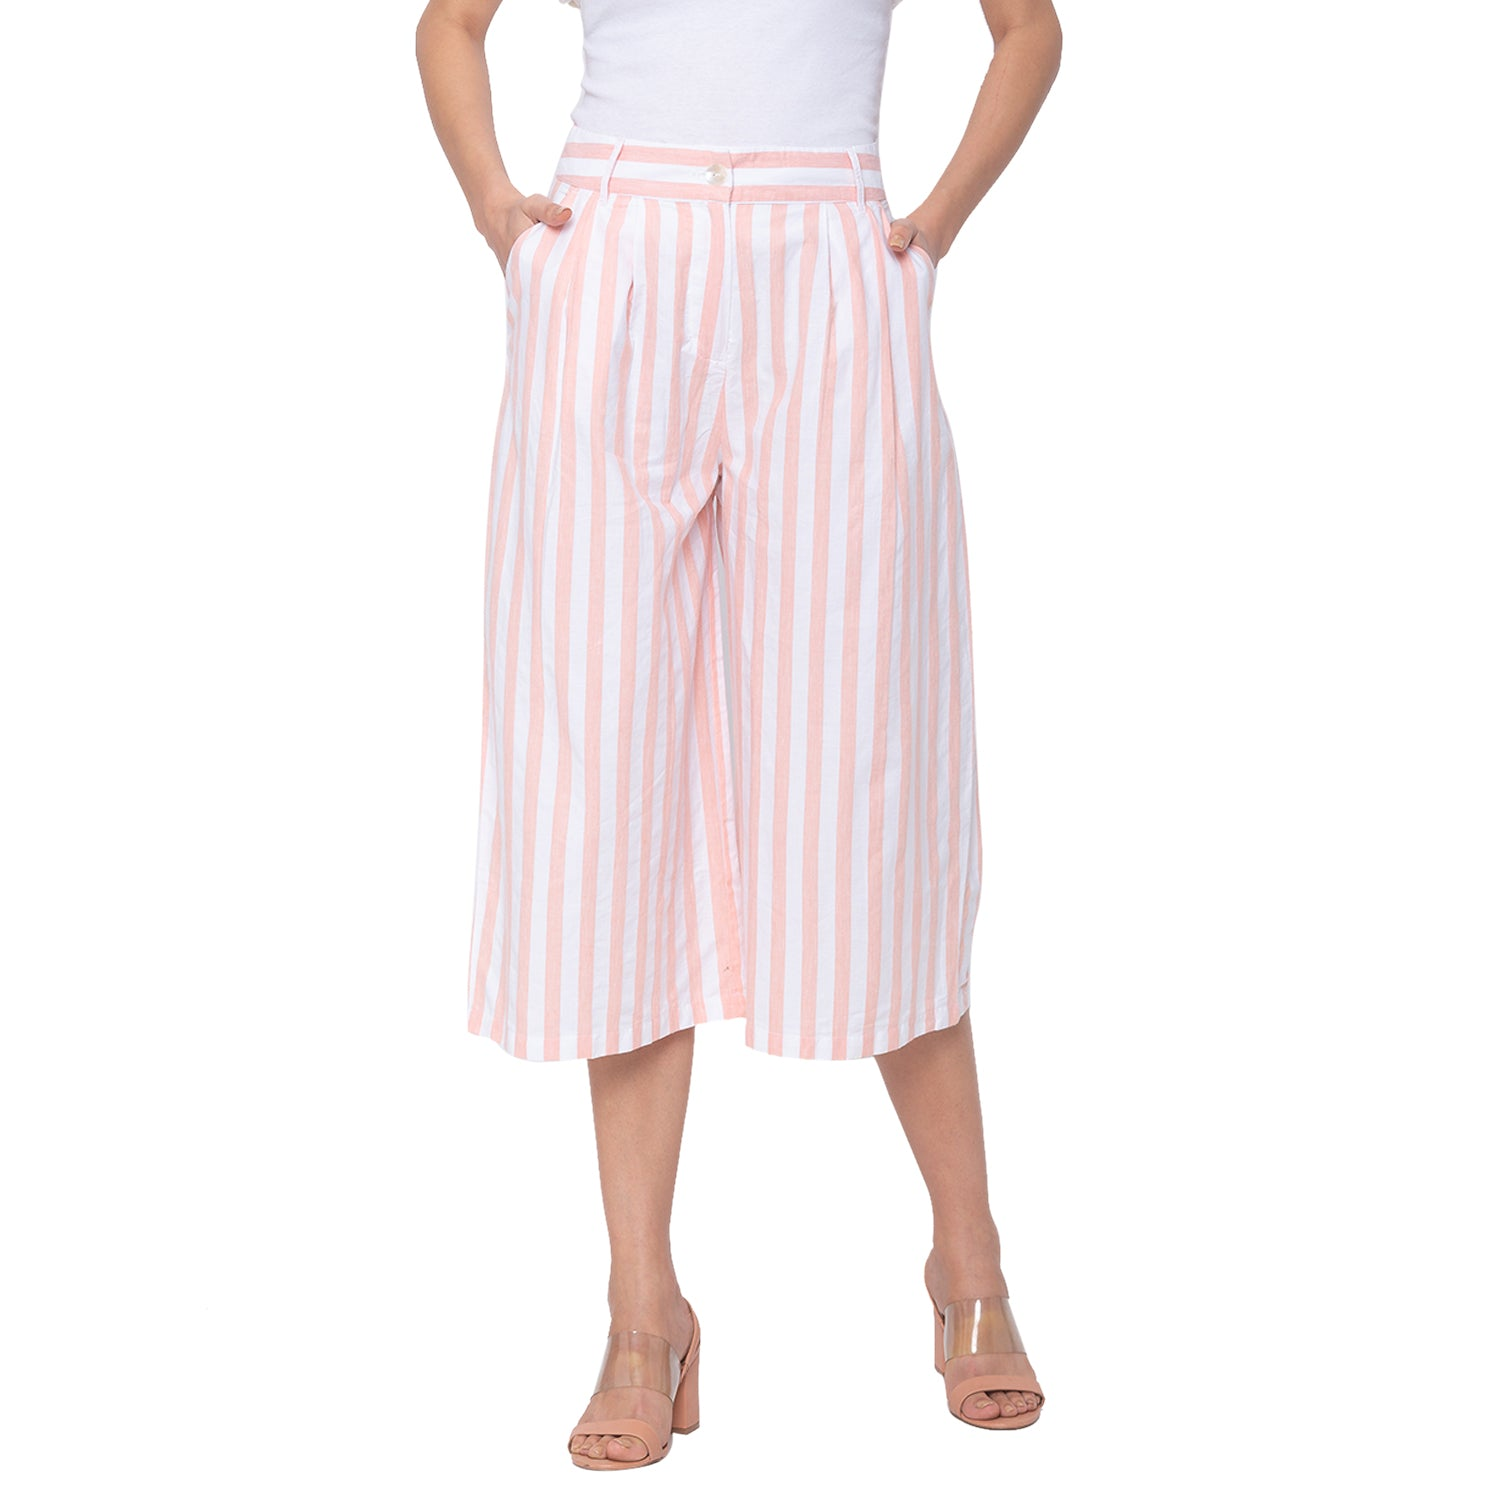 Globus White Striped Trousers-1